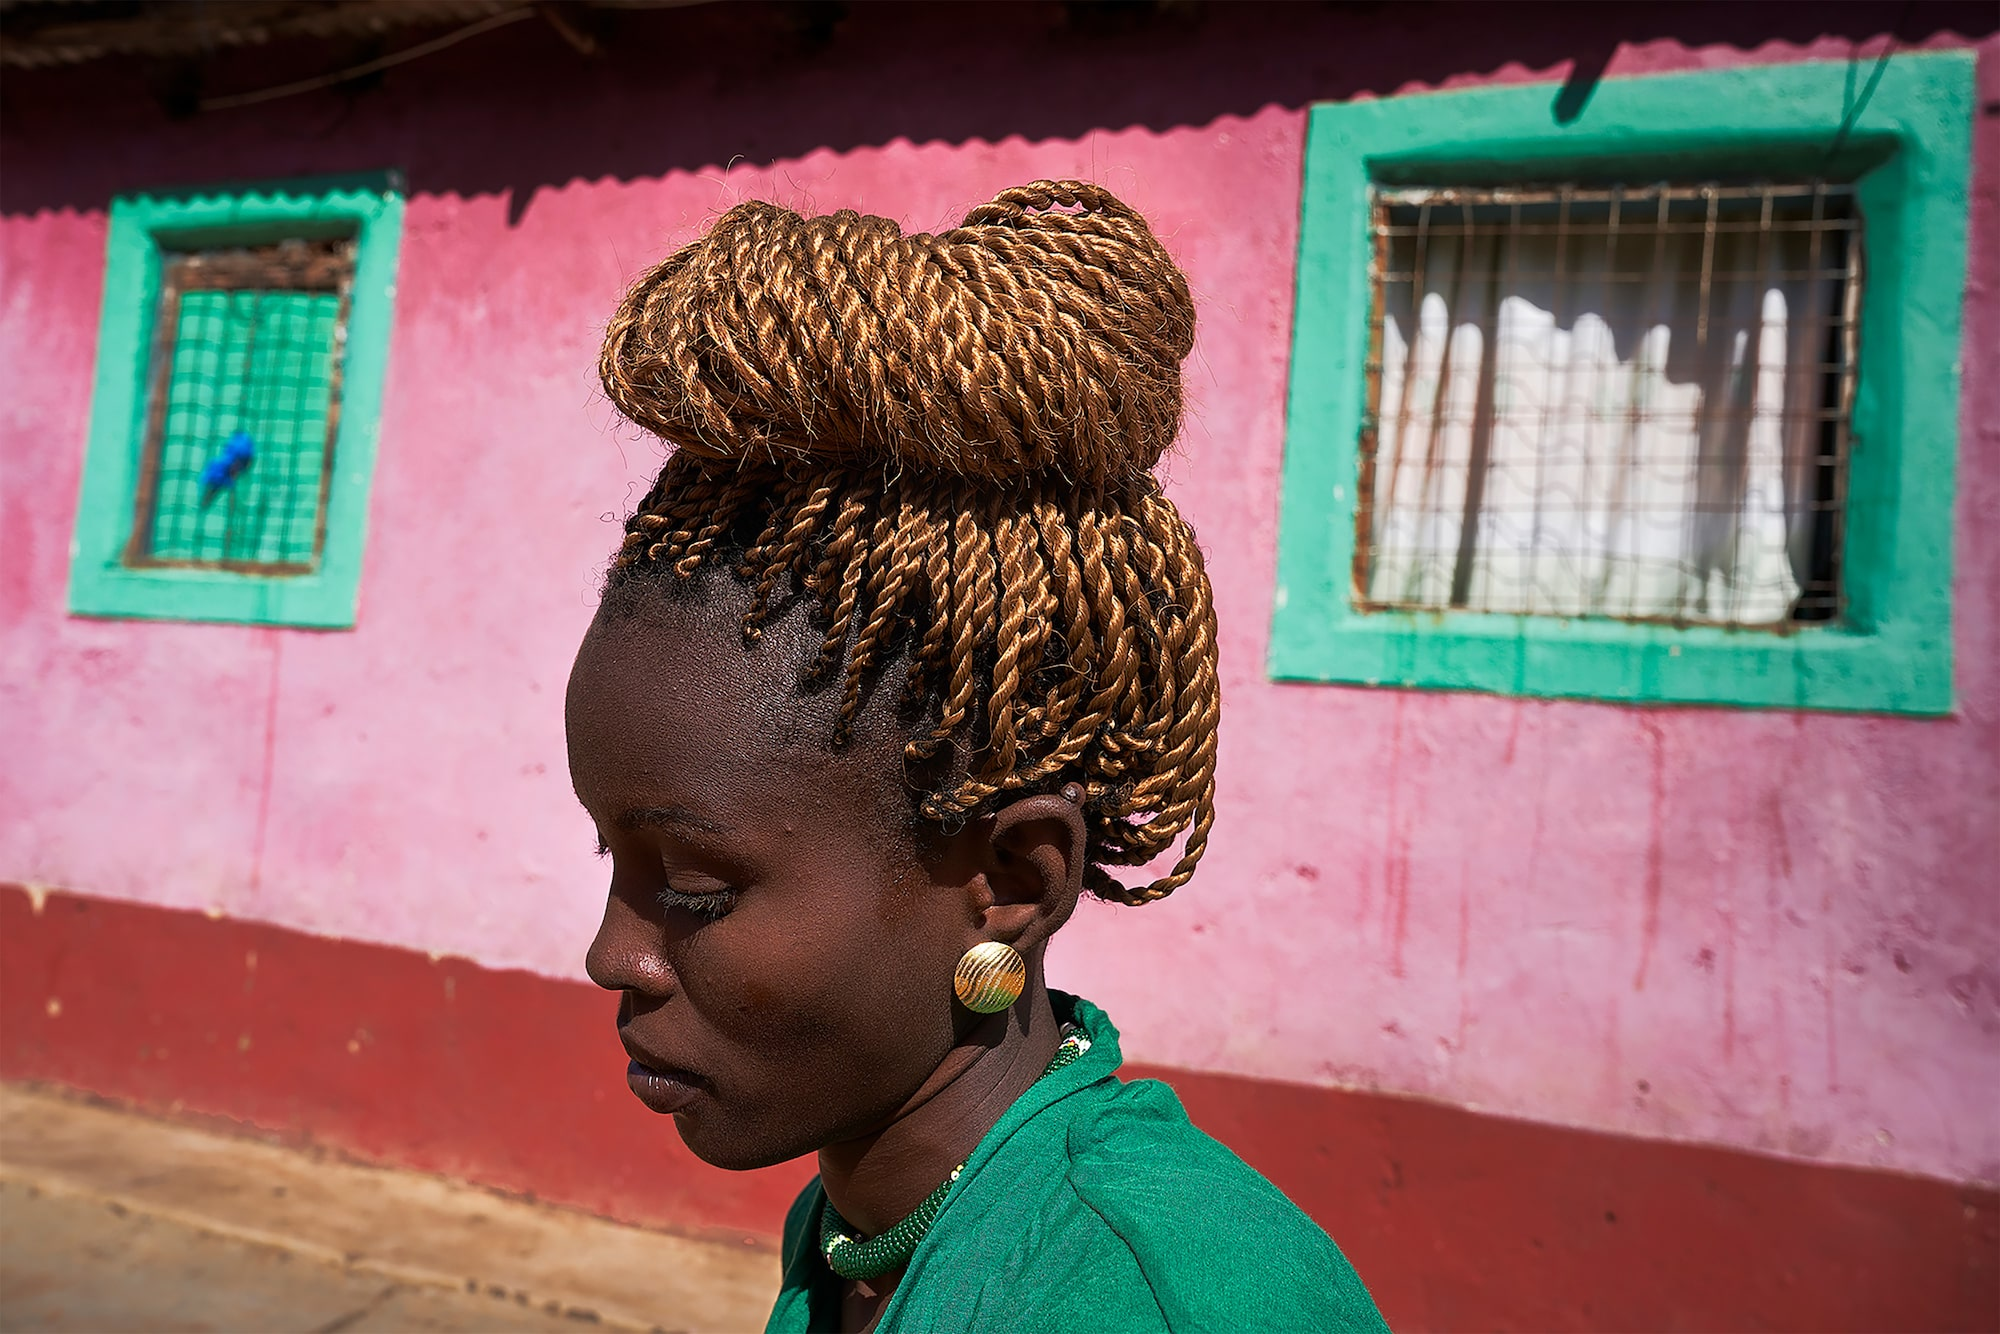 tomasz tomaszewski sony alpha 7RM3 profile of a young kenyan girl with intricately braided hair